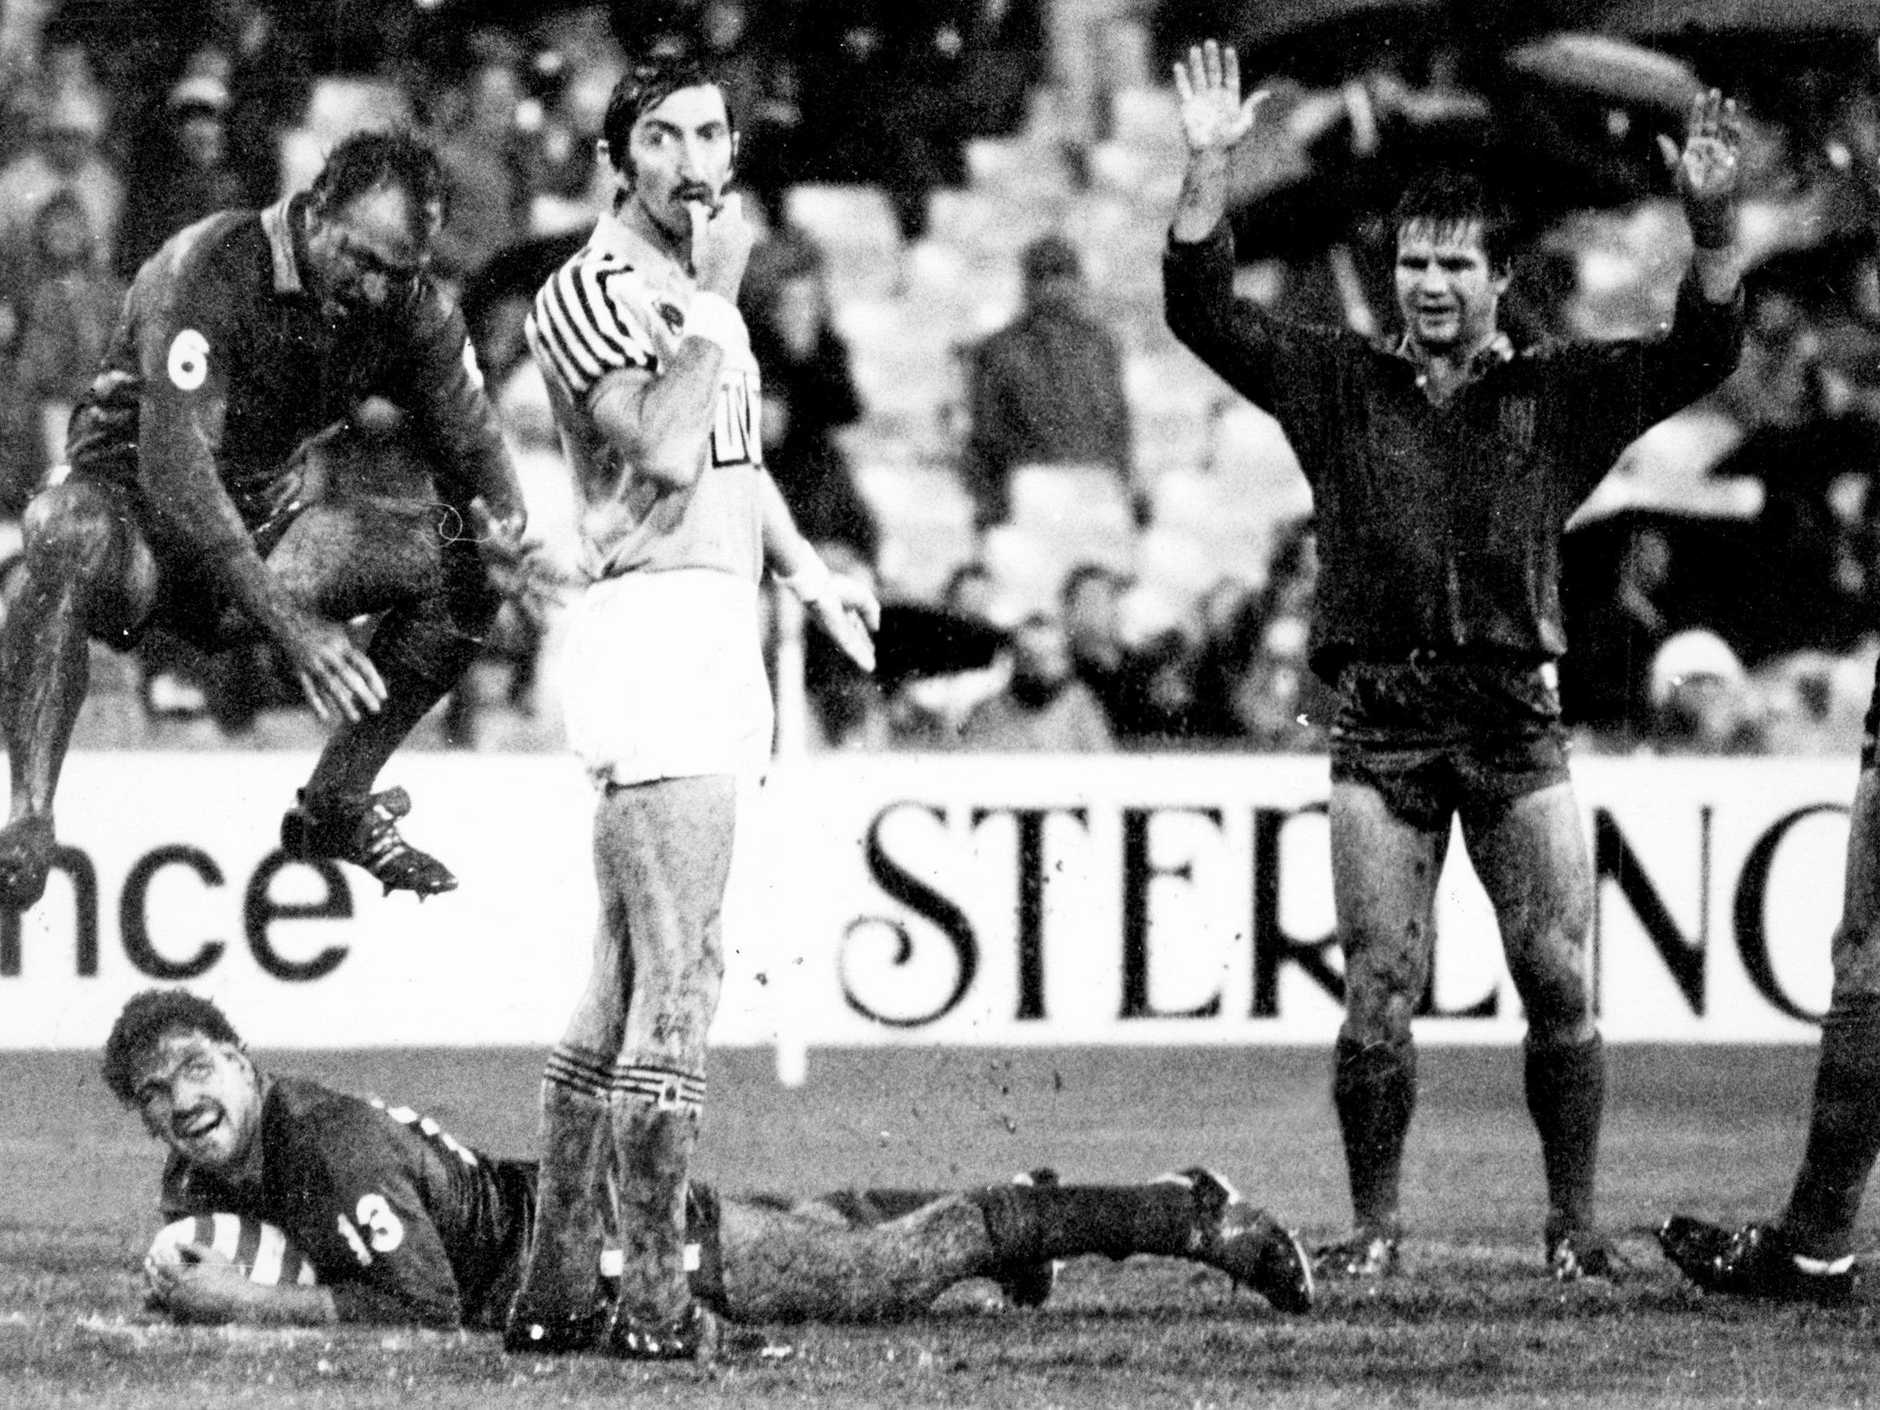 Referee Barry Gomersall awards a try to Greg Dowling in a State of Origin match at the SCG in 1984. Picture: Peter Kurnik/News Ltd Archive  (copyright)